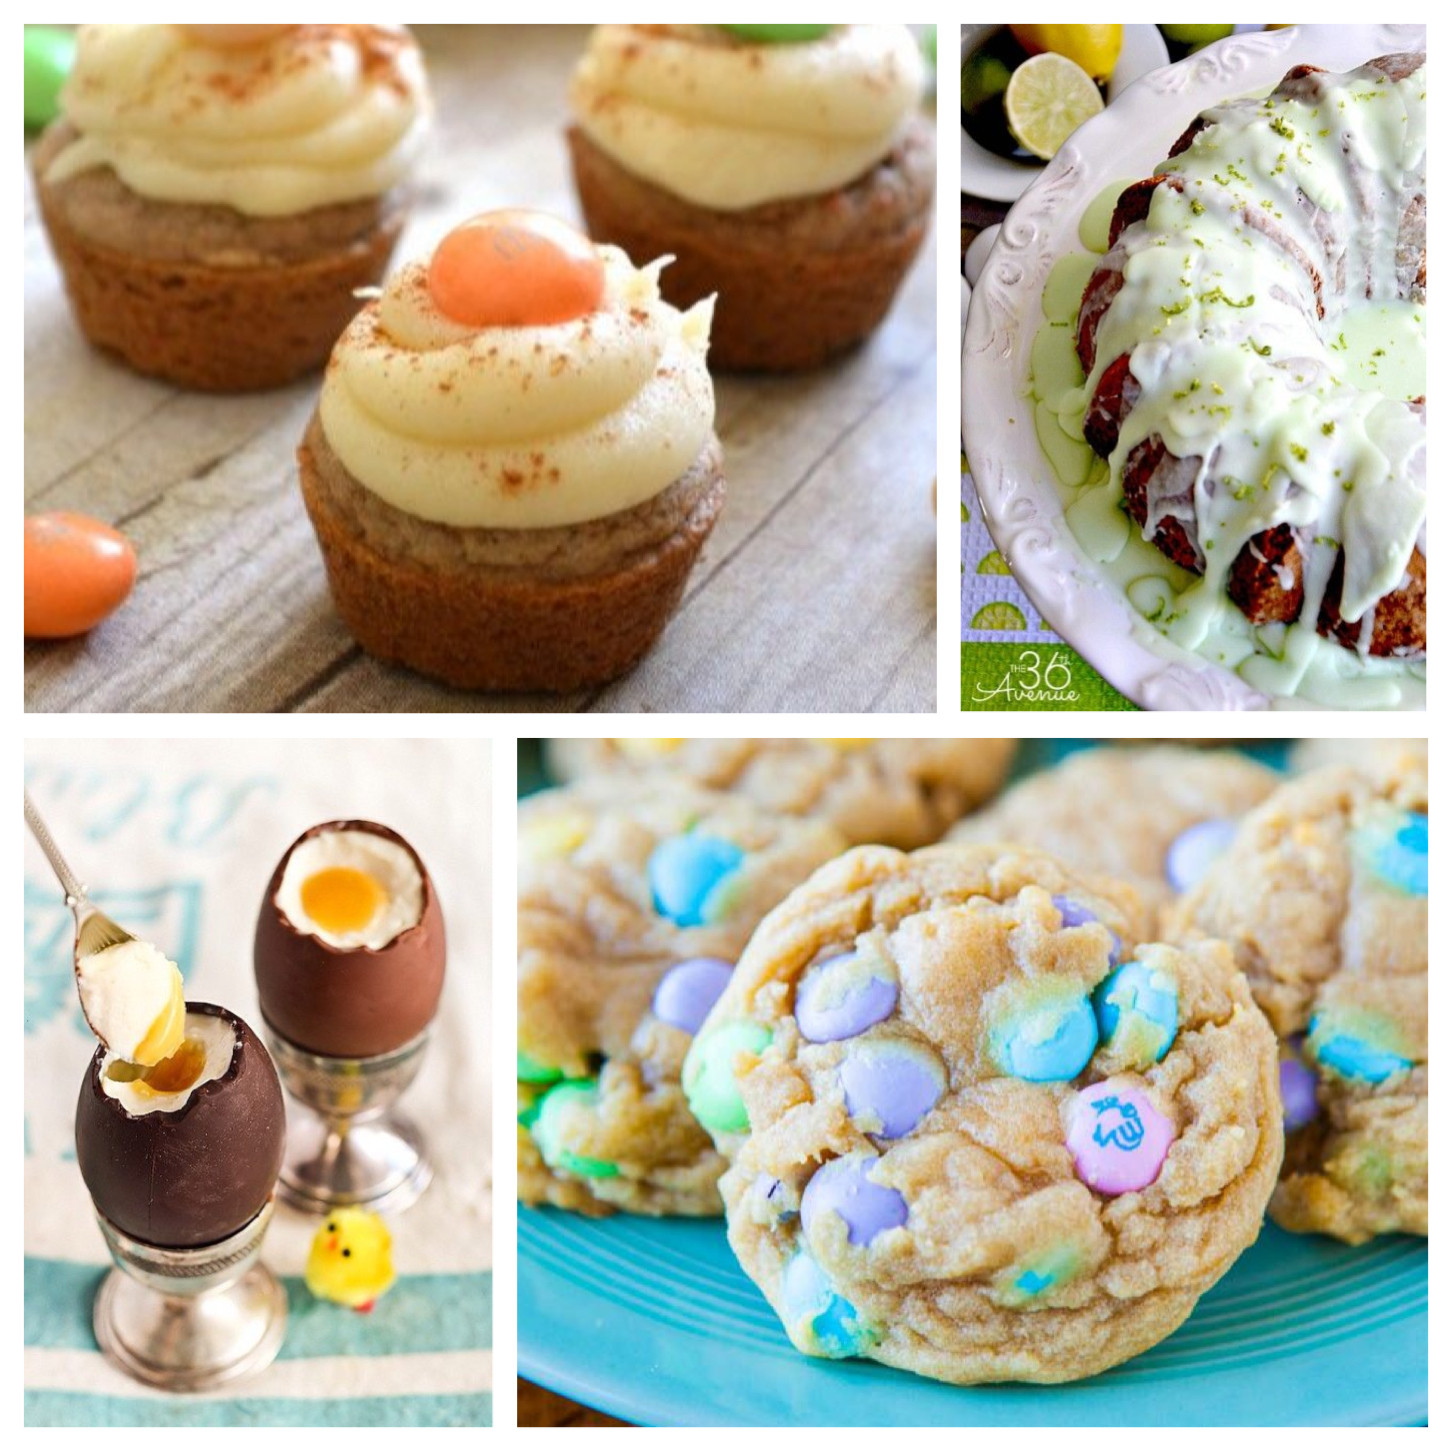 Recipe For Easter Desserts  Easter Desserts for Every Sweet Tooth